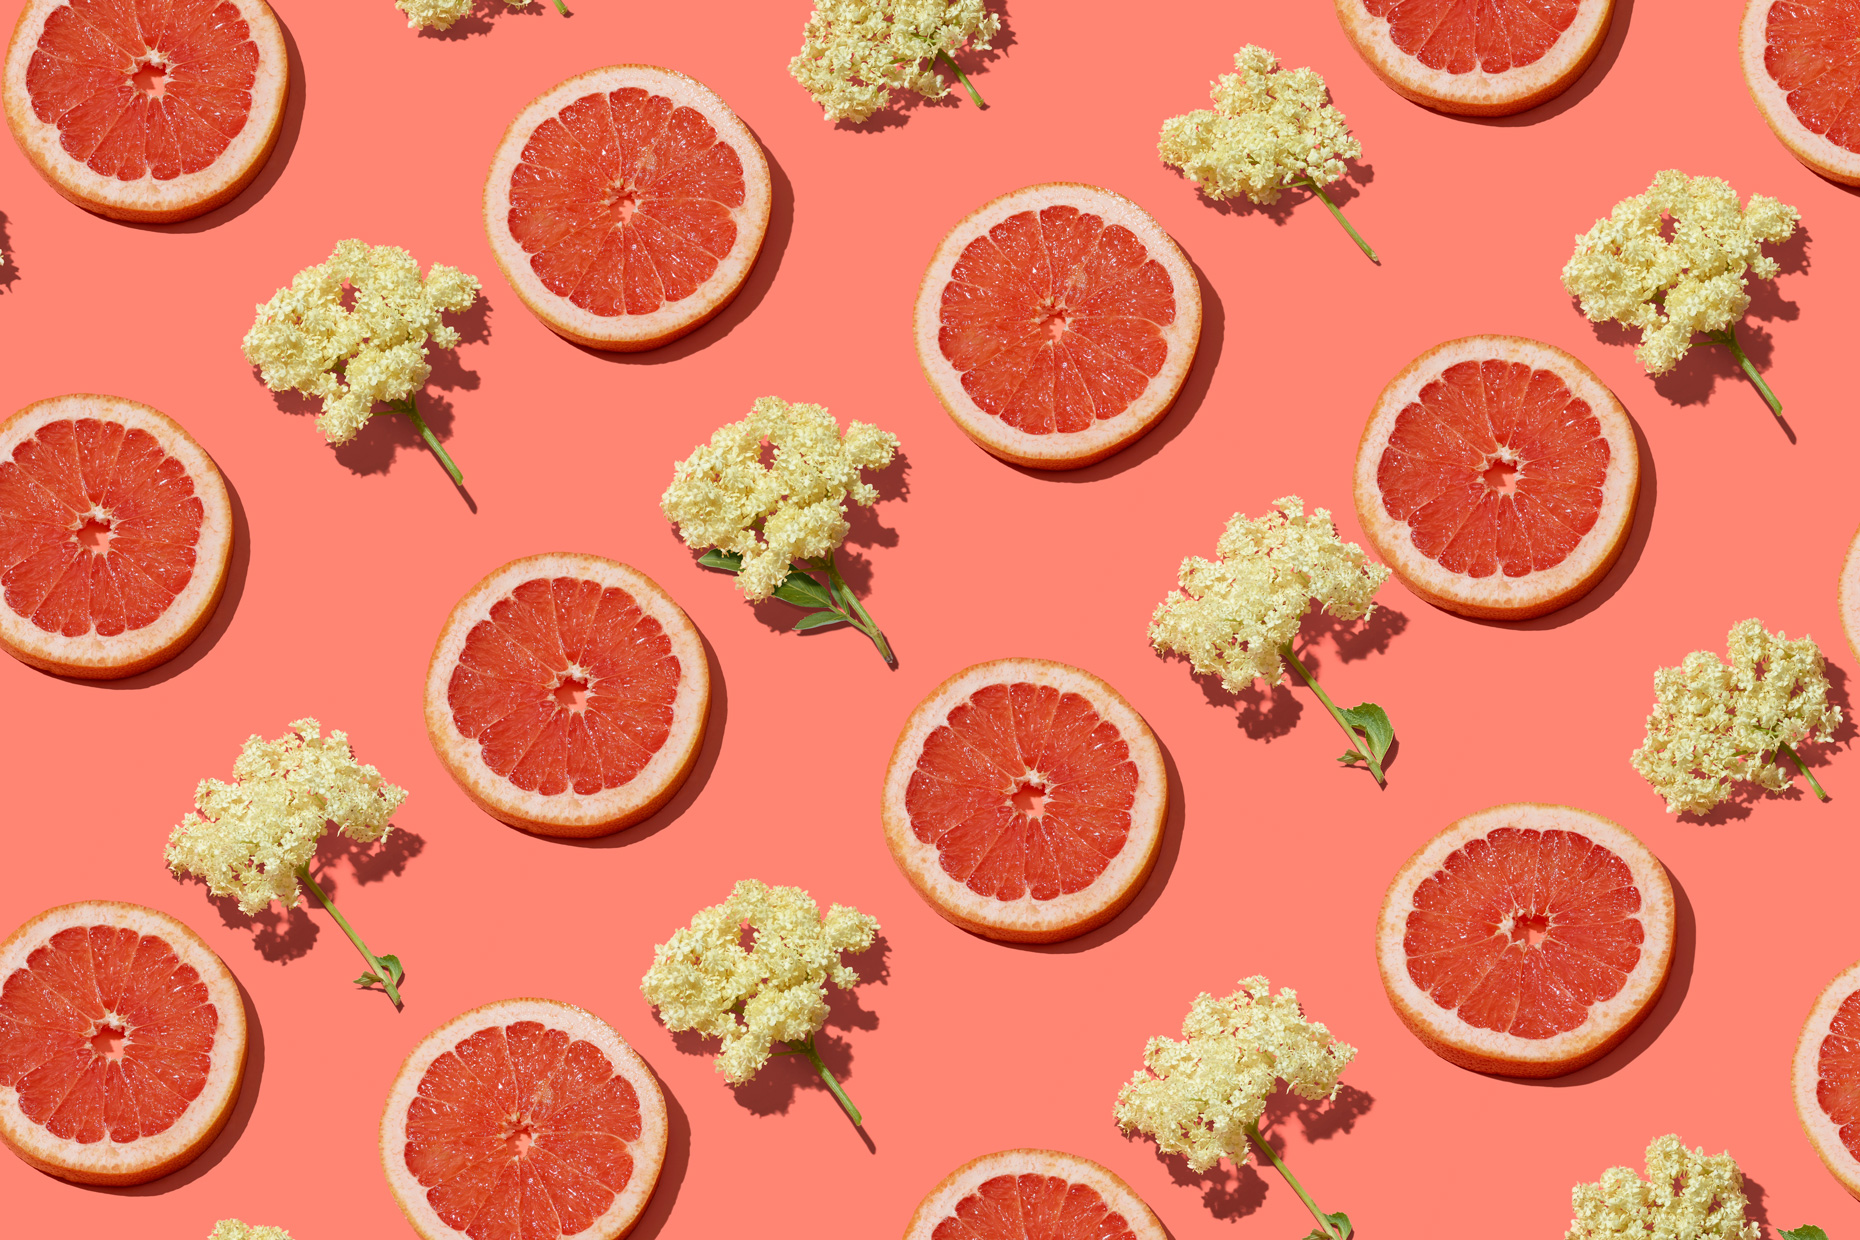 Flow_06-19-18_Print_GrapefruitElderflower